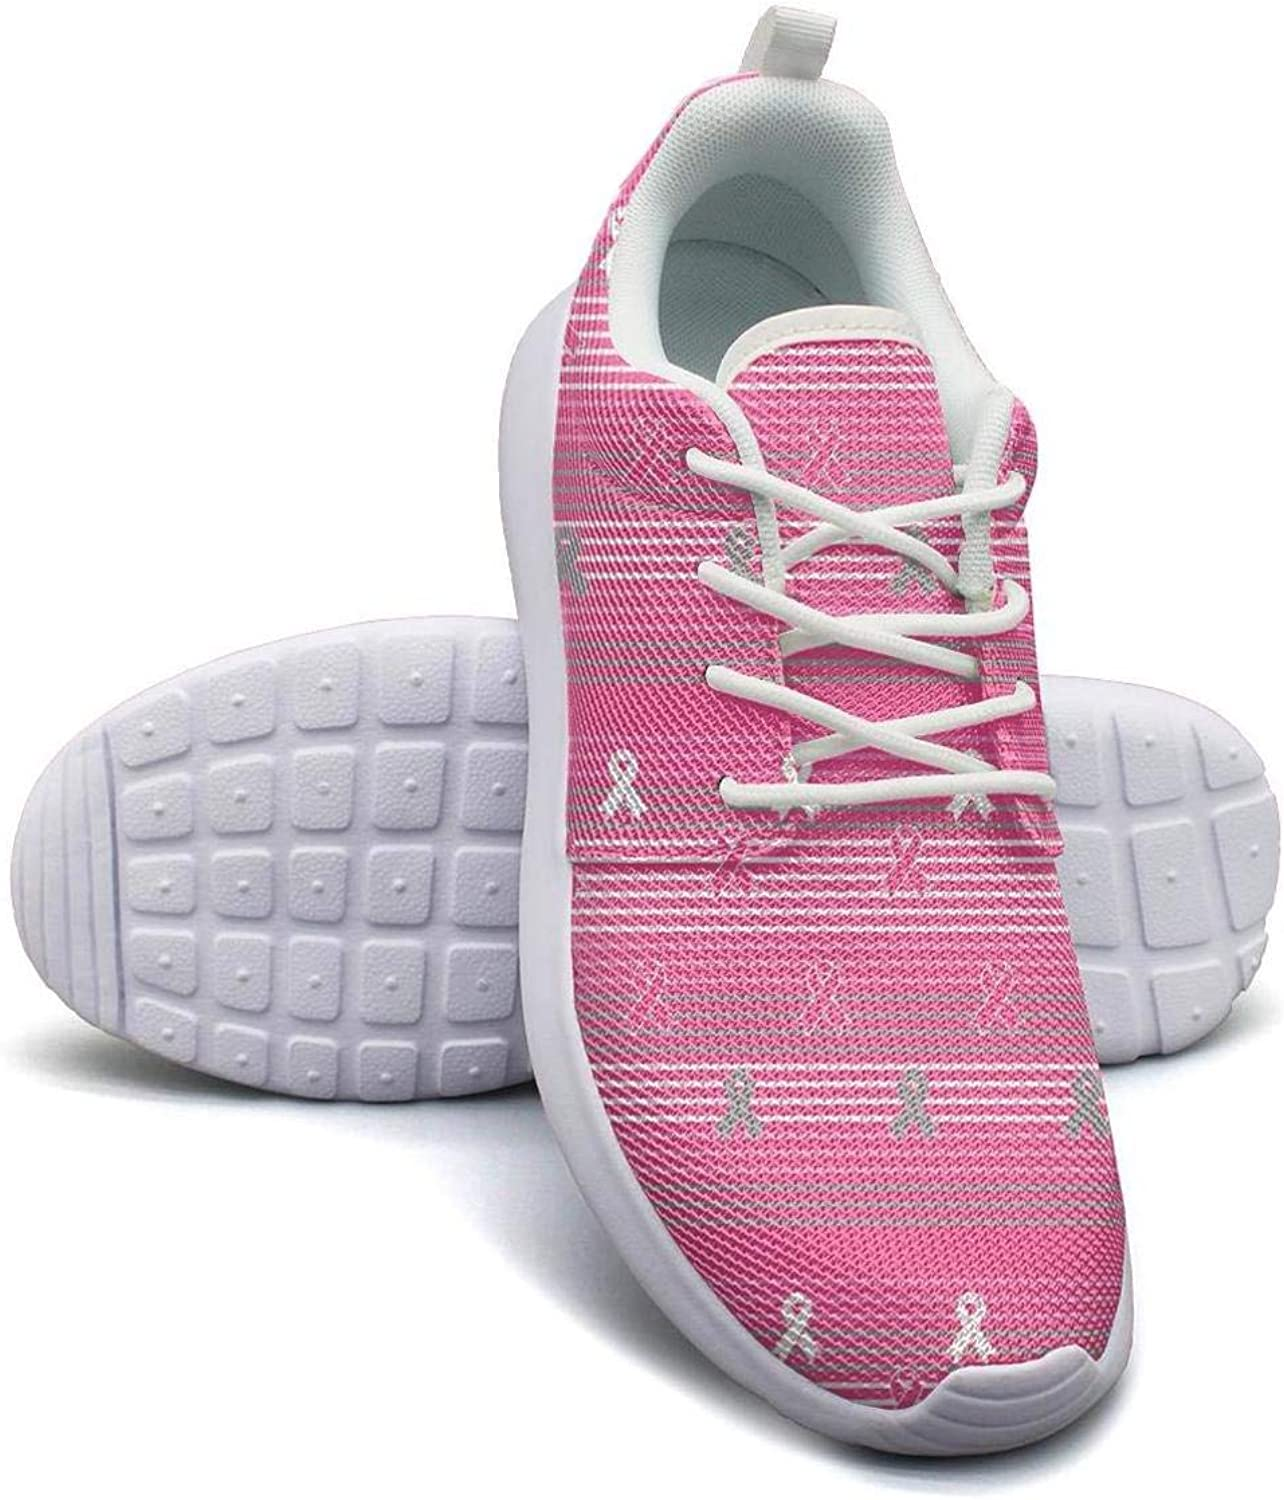 Women's Athleisure Sneakers FCUK Cancer Funny Cancer Survivor Ultra Lightweight Breathable Mesh Christmas Fashion shoes